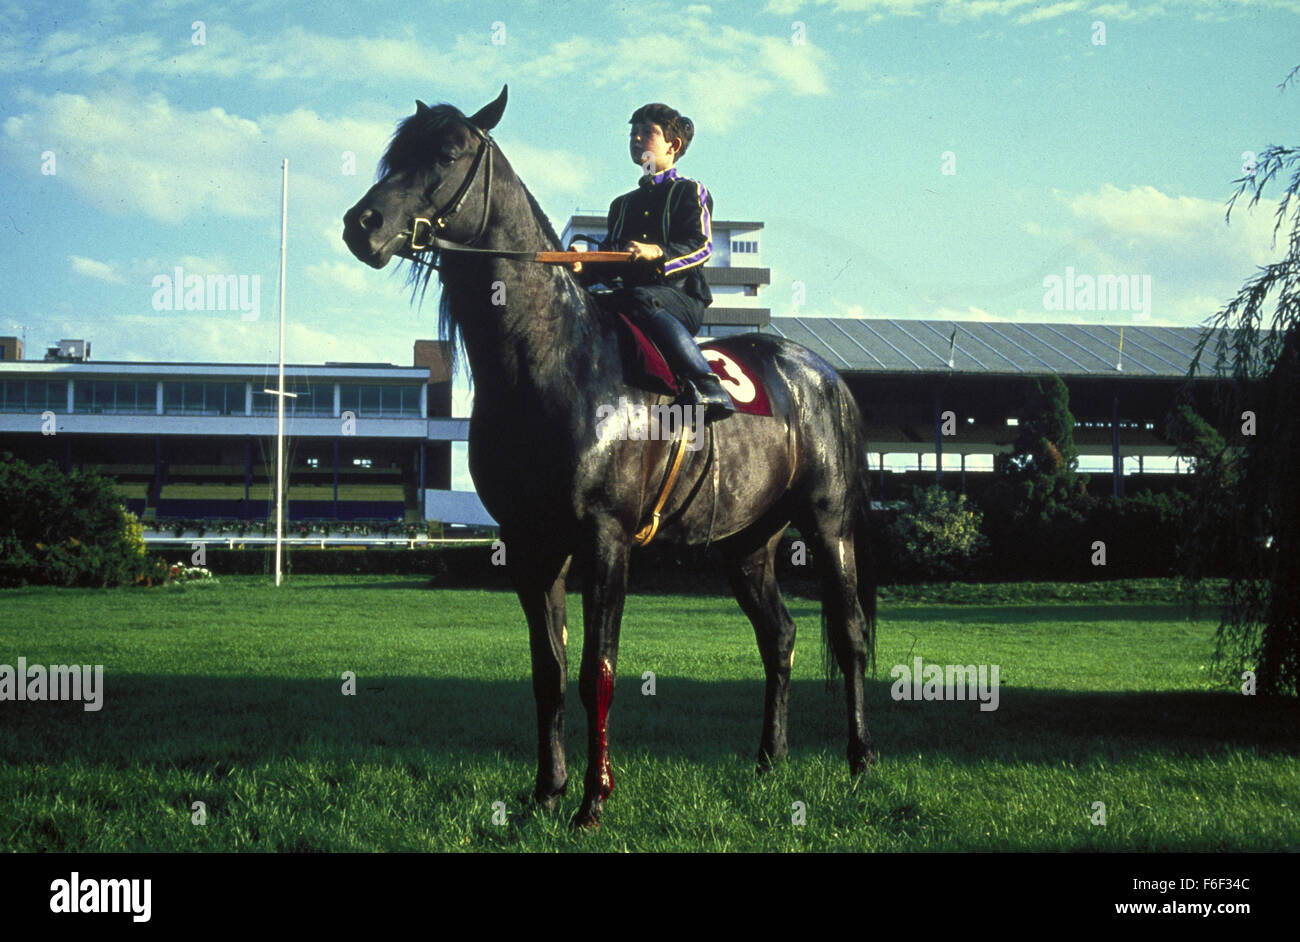 RELEASE DATE: October 17, 1979. MOVIE TITLE: The Black Stallion. STUDIO: Omni Zoetrope. PLOT: While traveling with - Stock Image